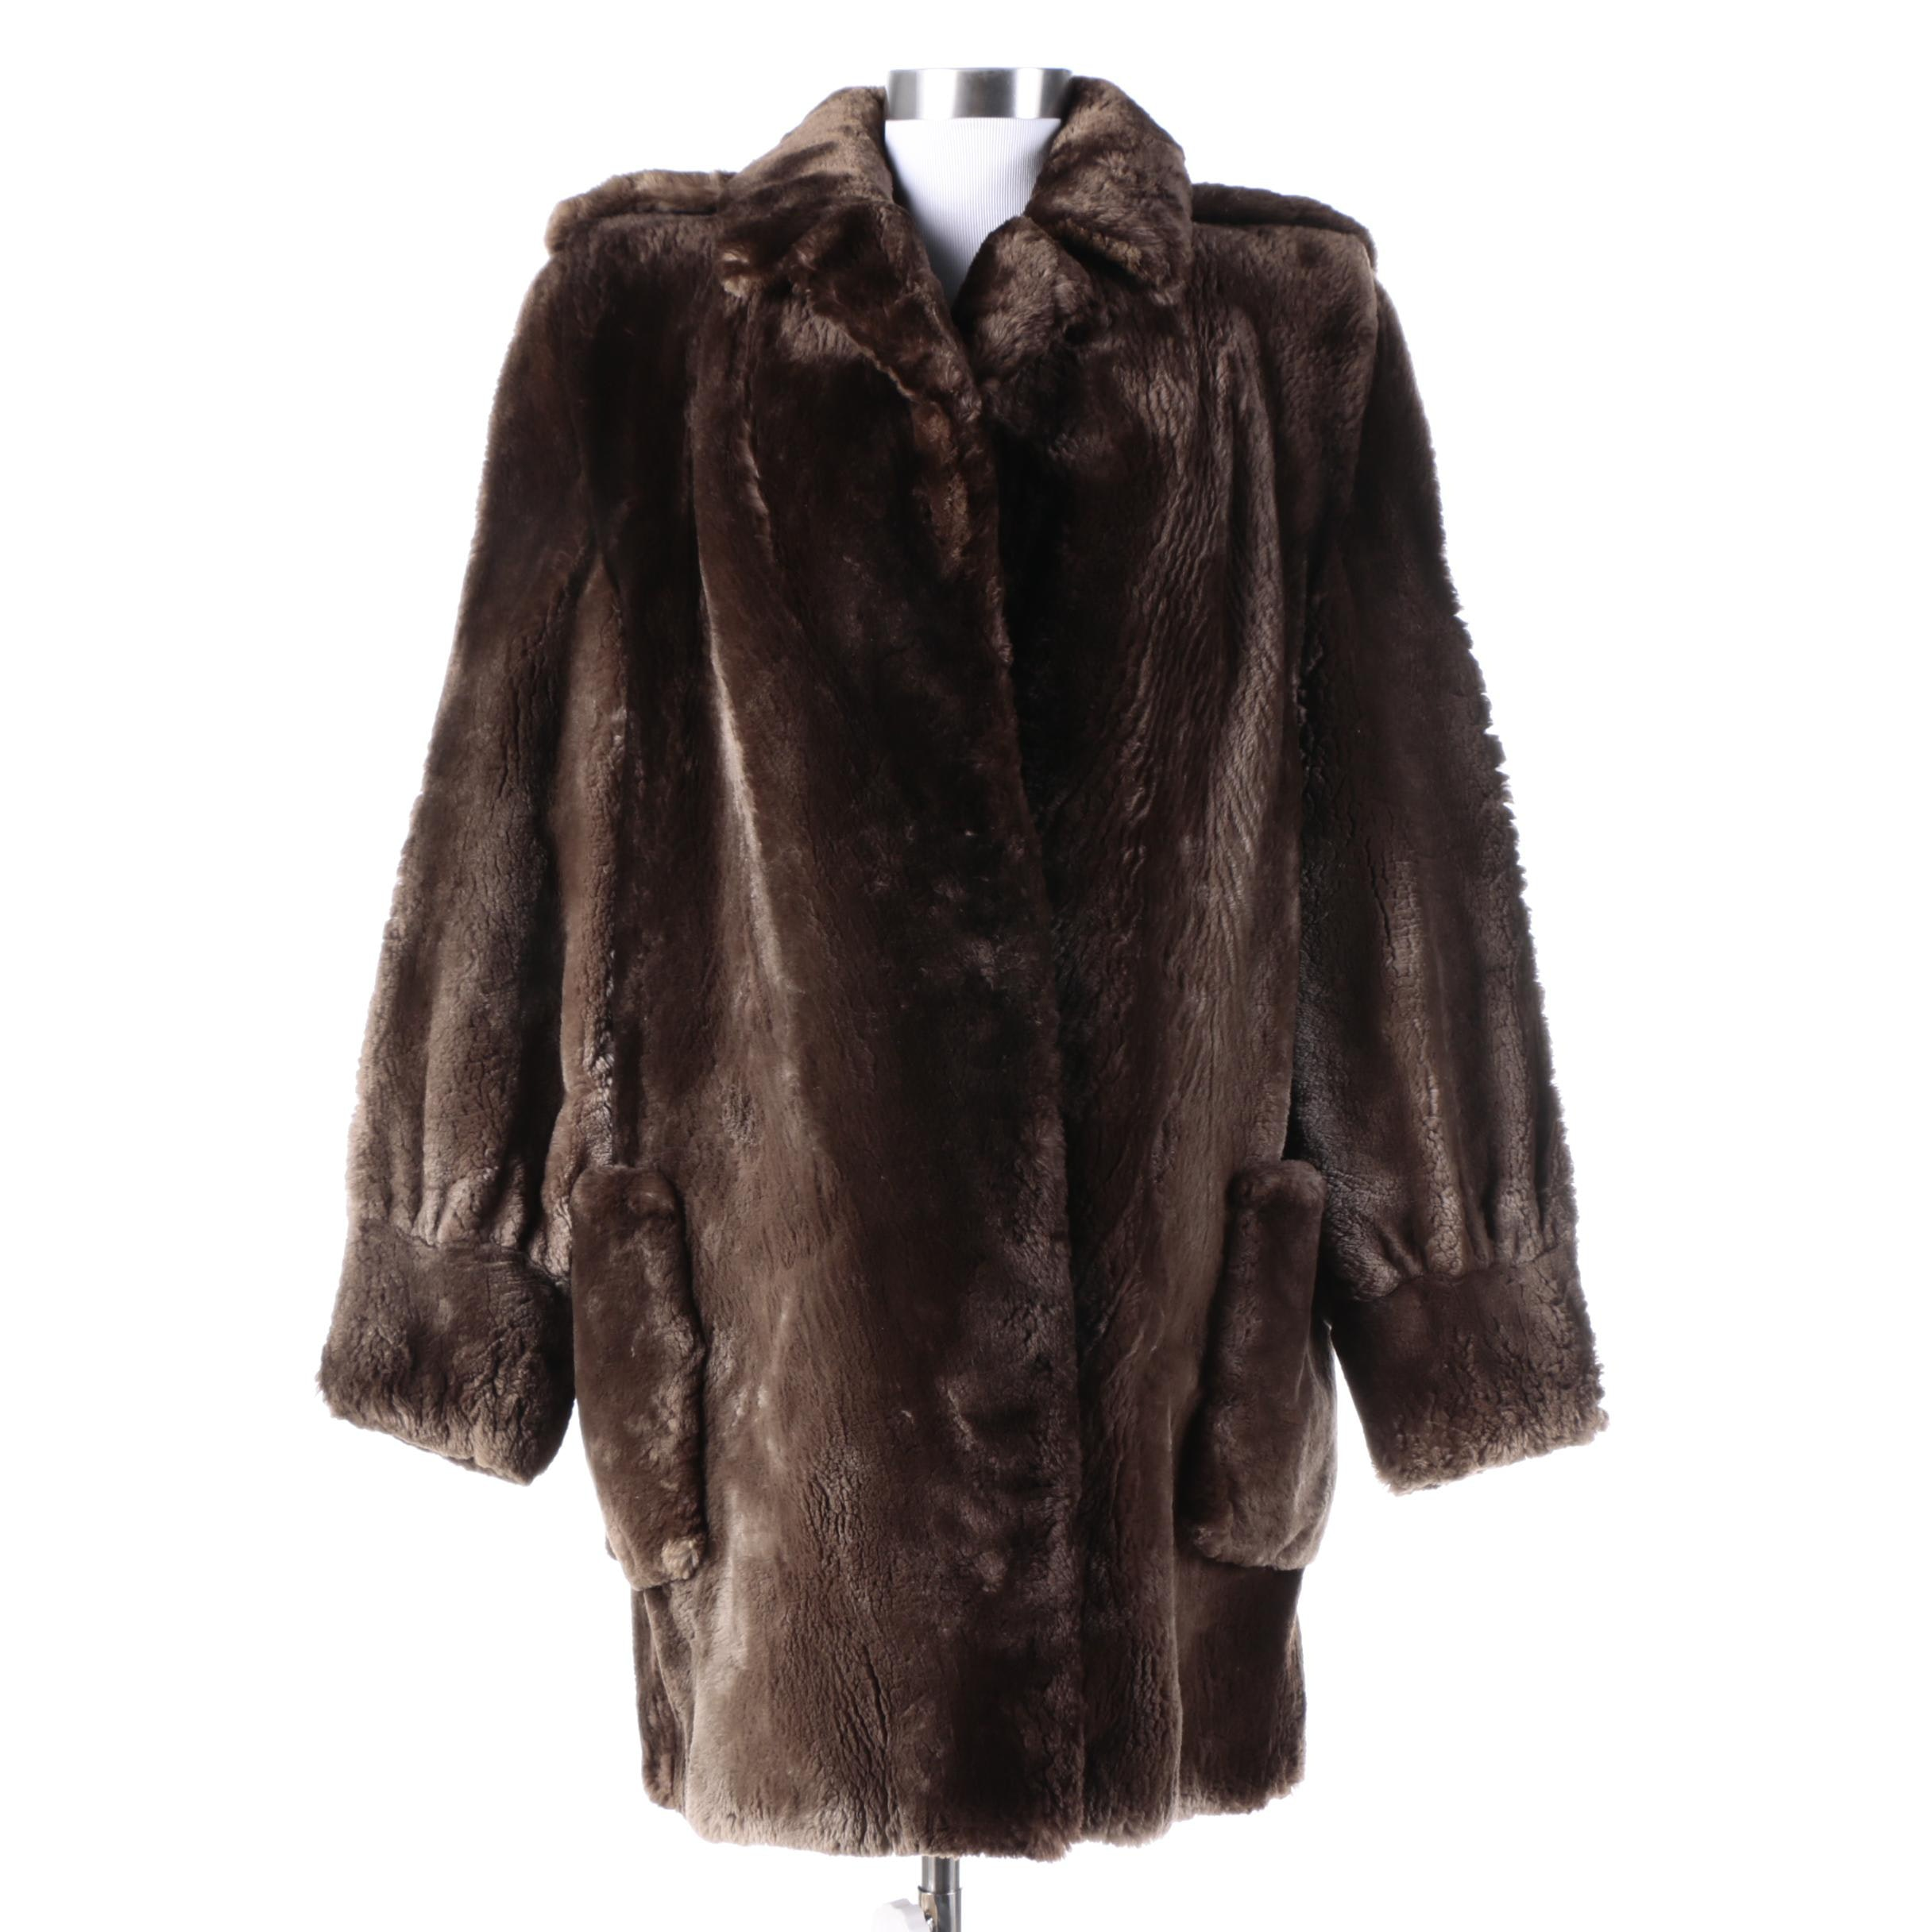 Women's Vintage Beaver Fur Coat